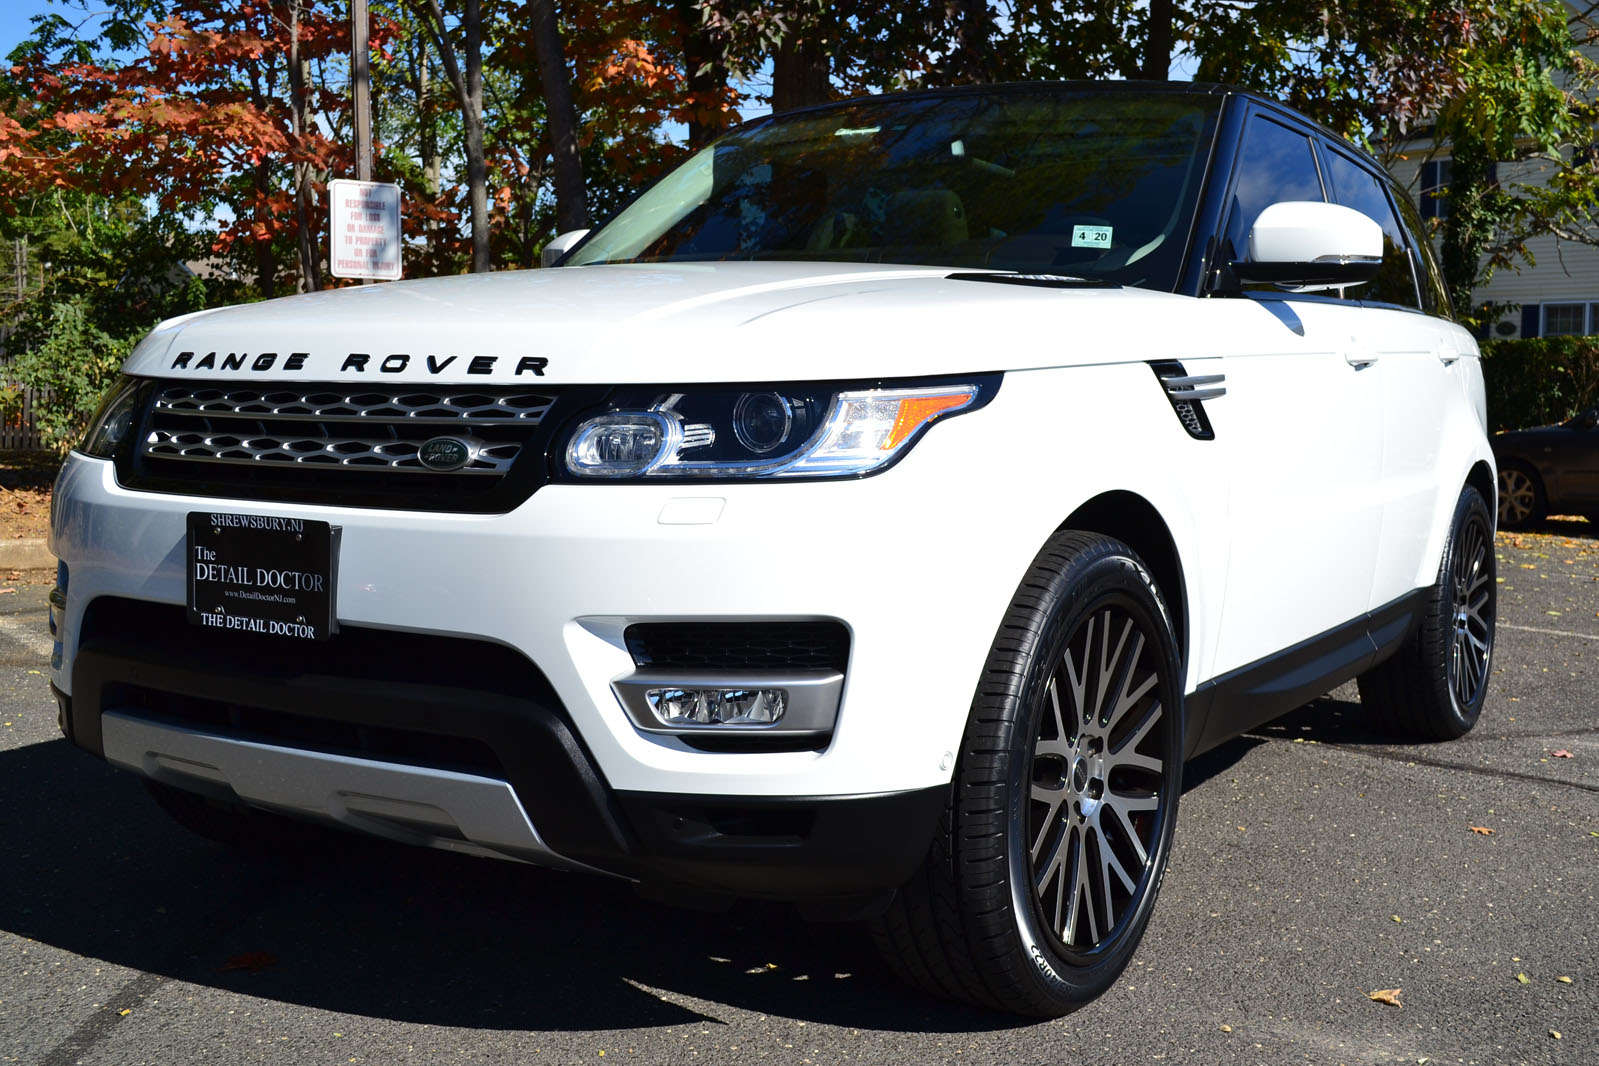 Used Rims For Sale Near Me >> 2015 land rover range rover sport - Pre-Owned